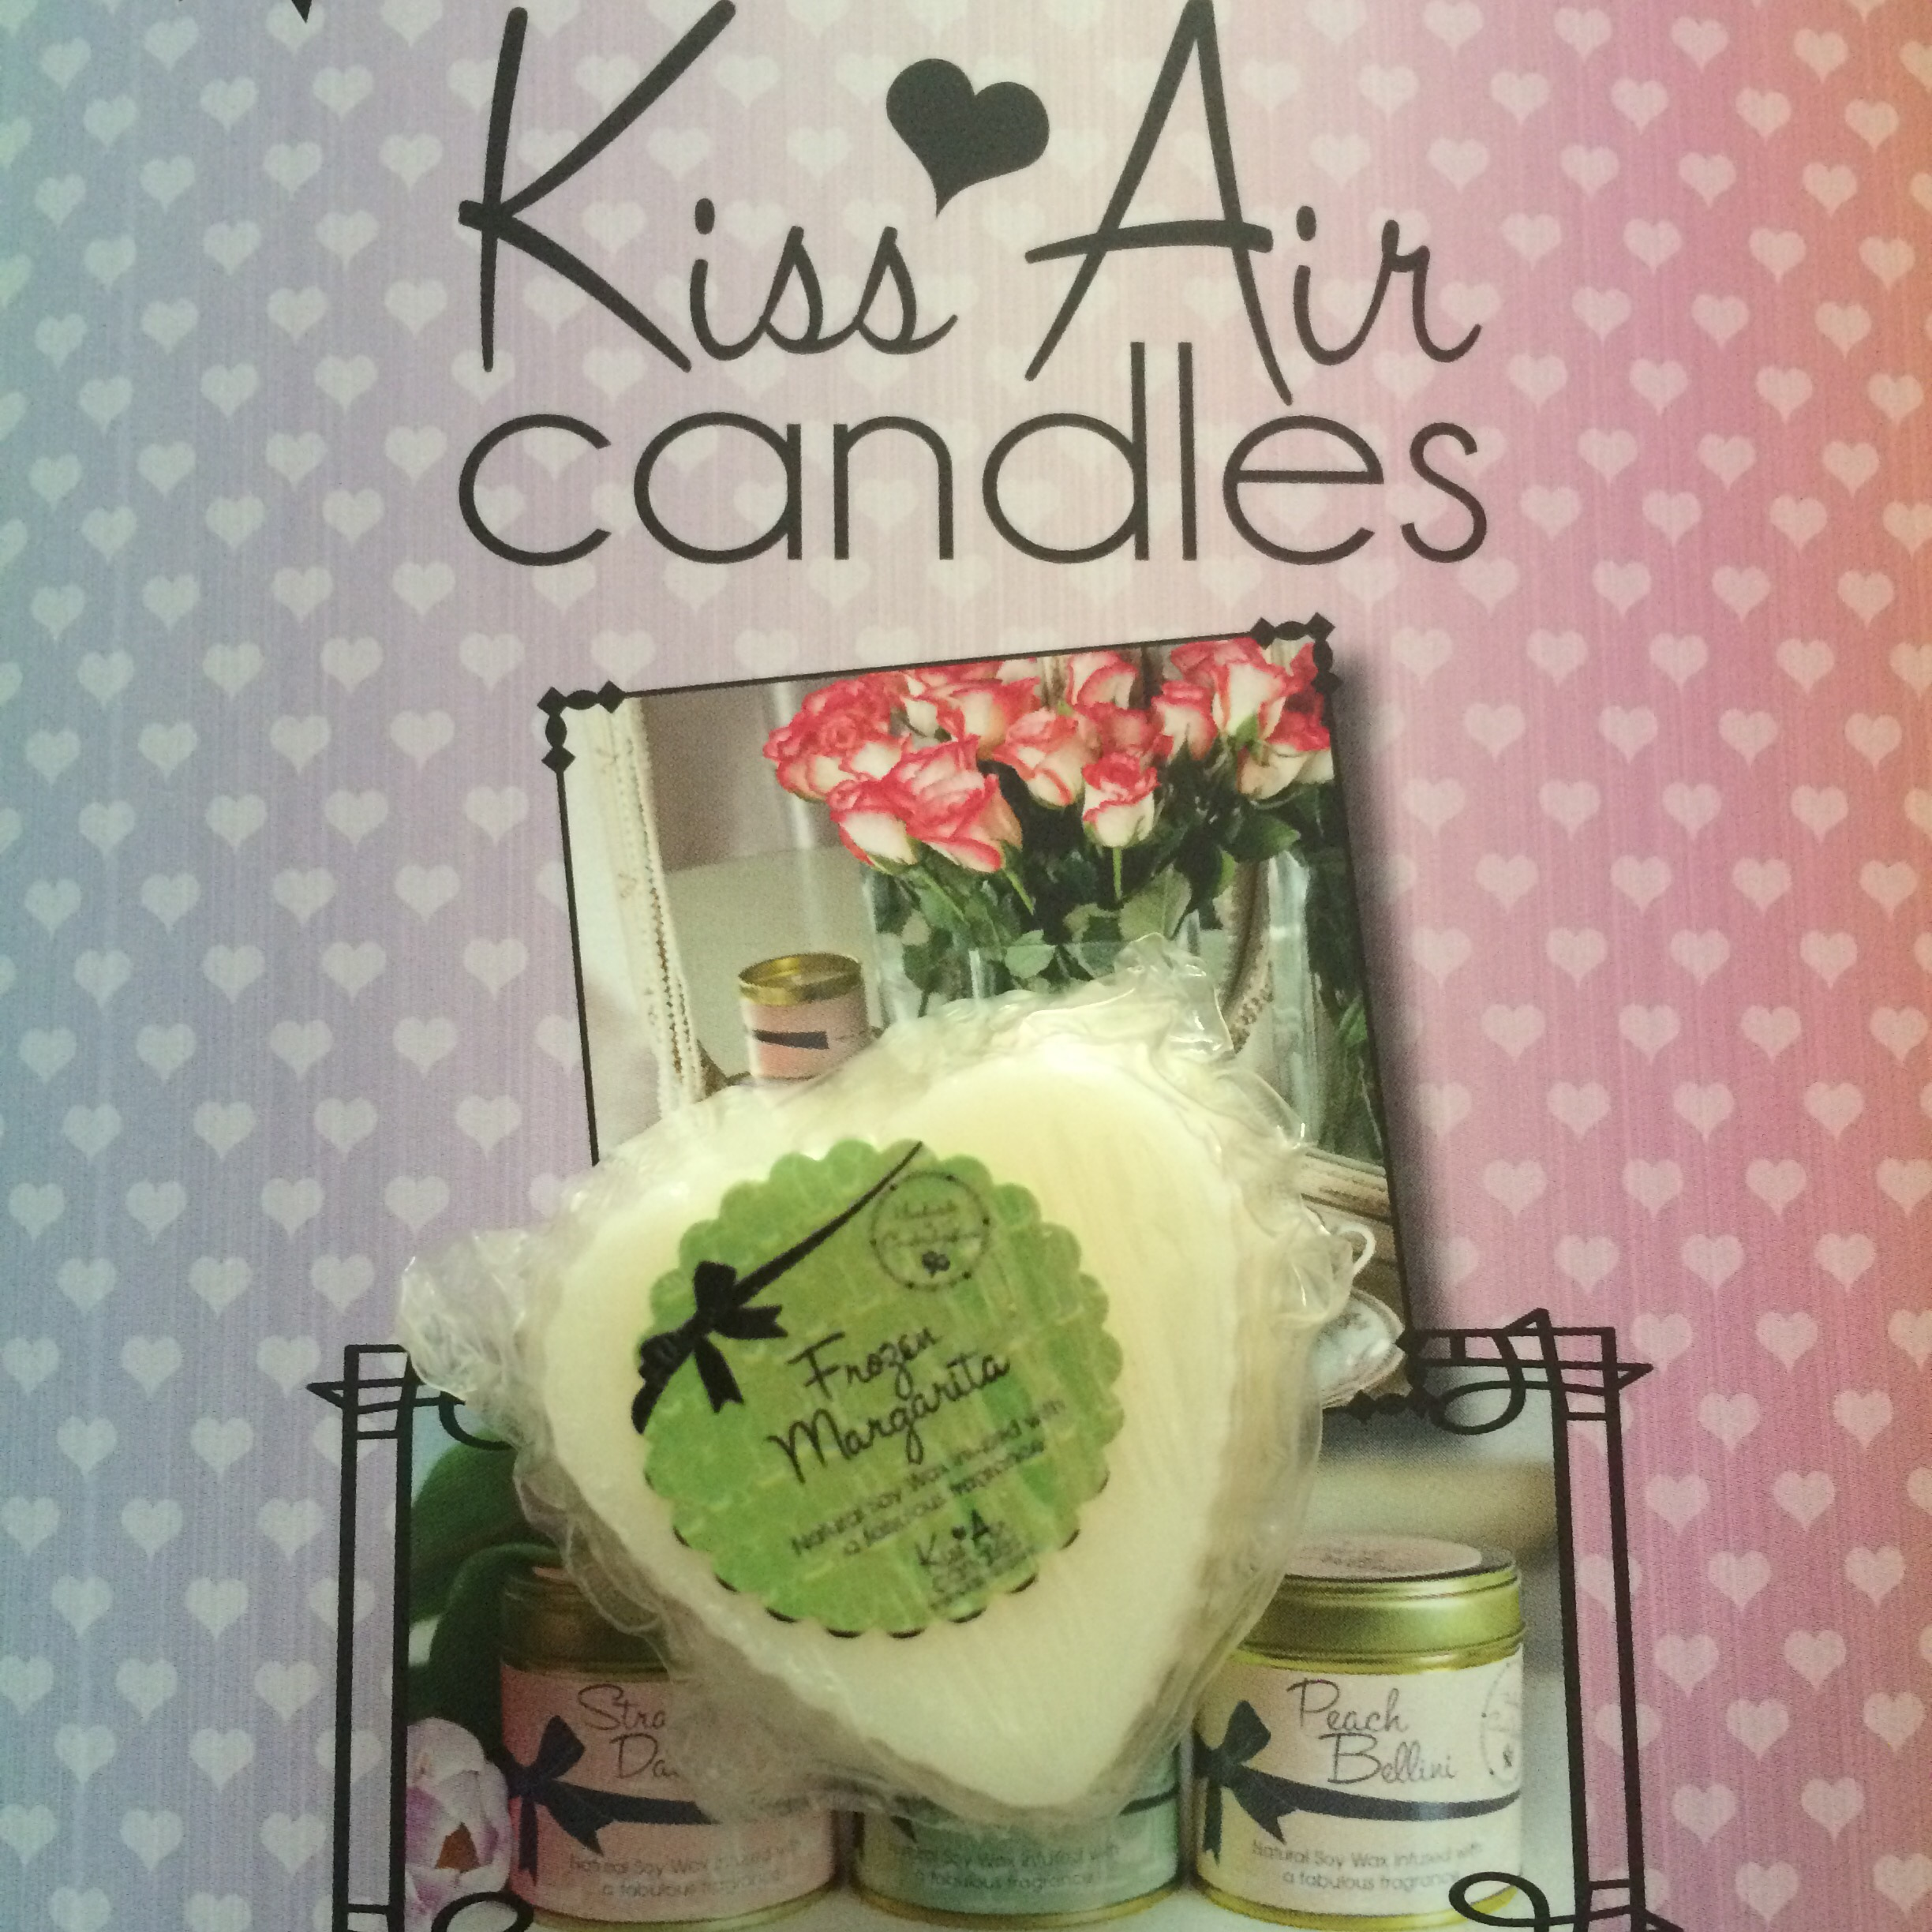 Kiss Air Candles Frozen Margarita Wax Melt Review